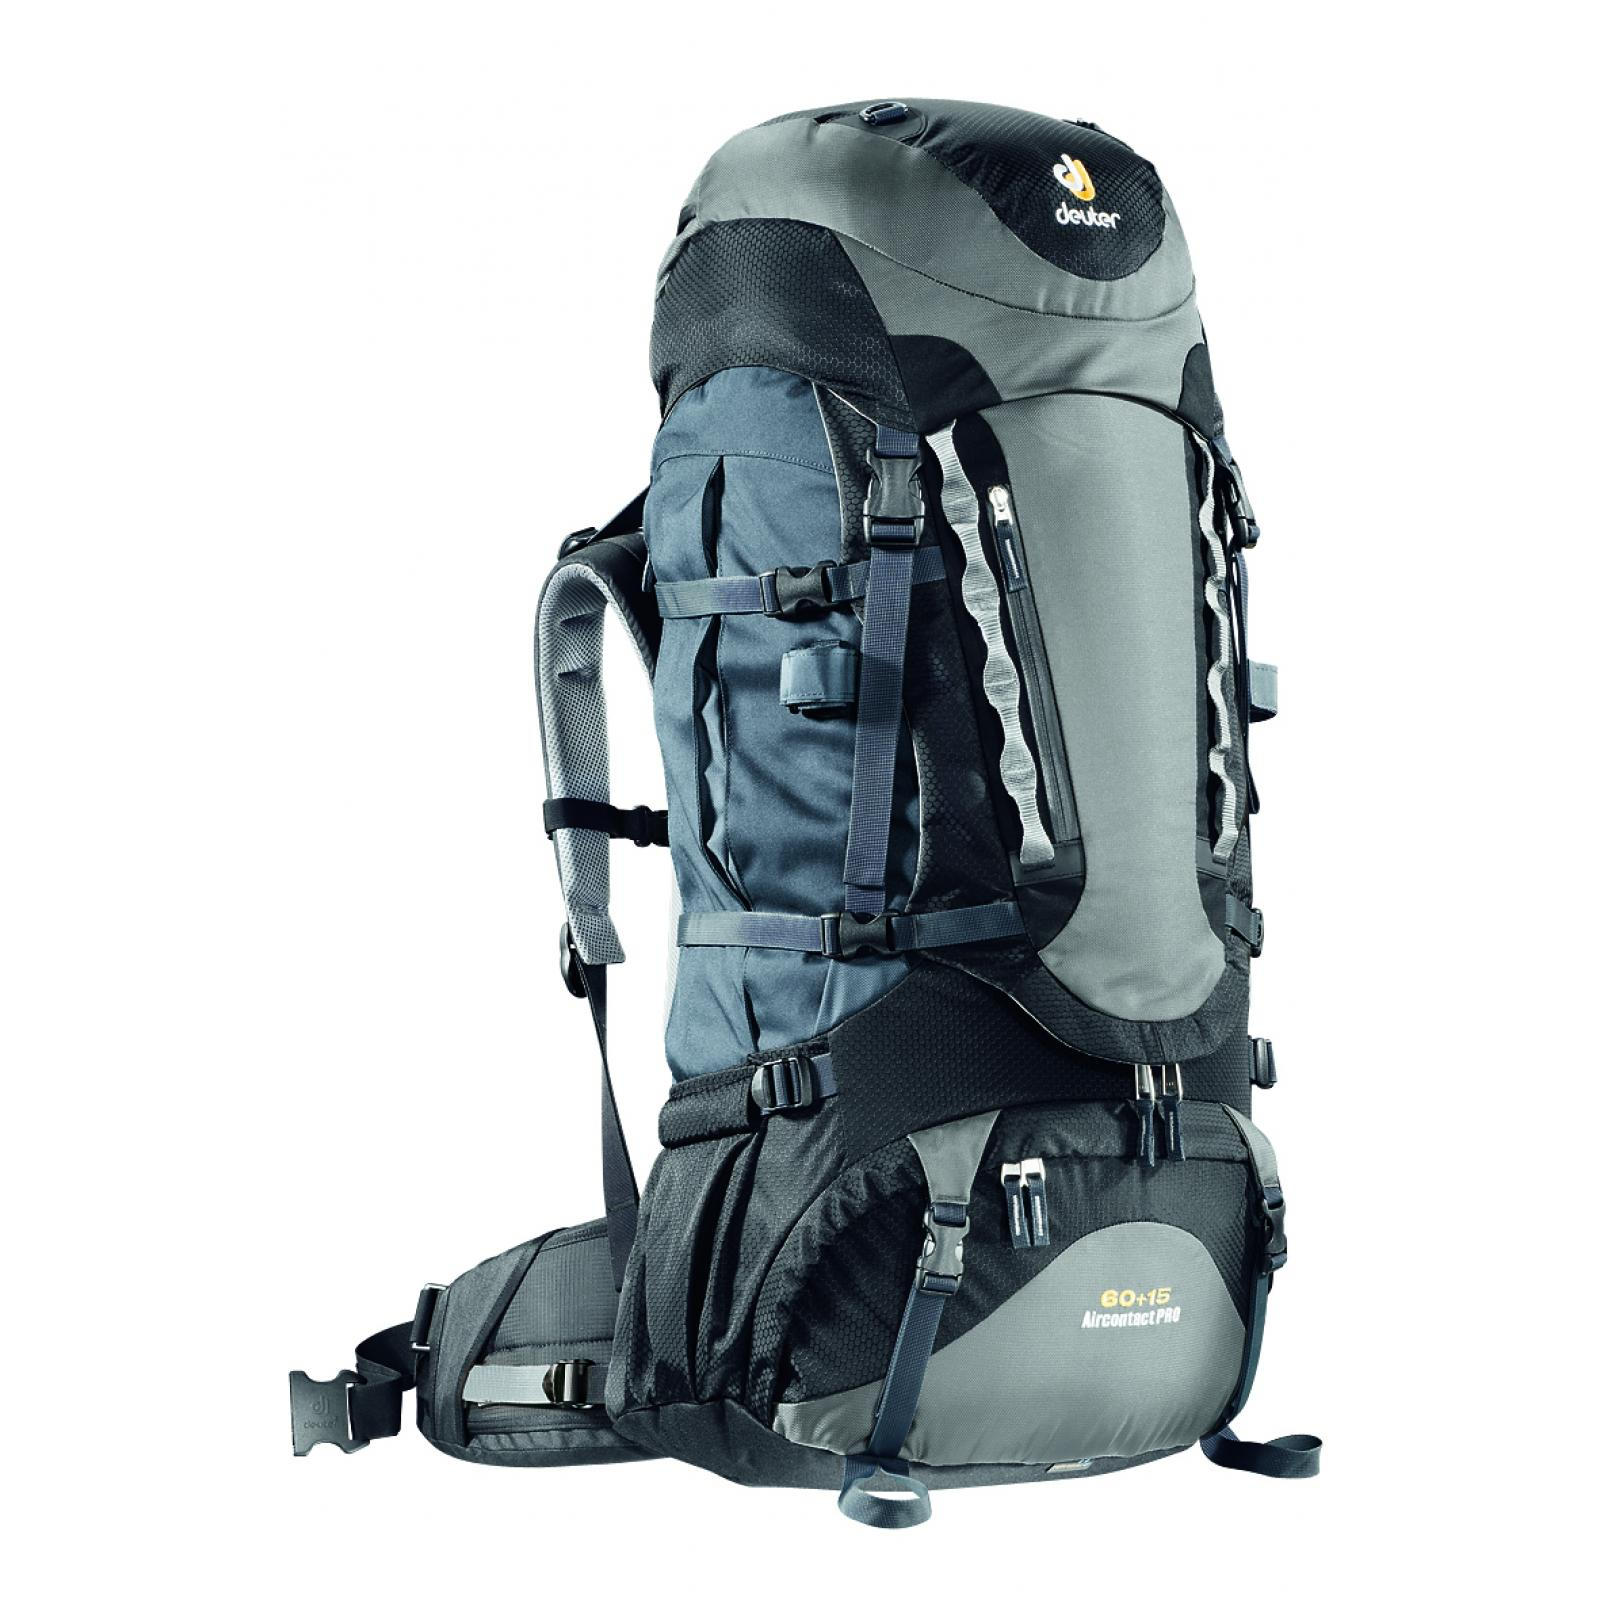 Arcopodo Adventure Indonesia Deuter Aircontact Pro